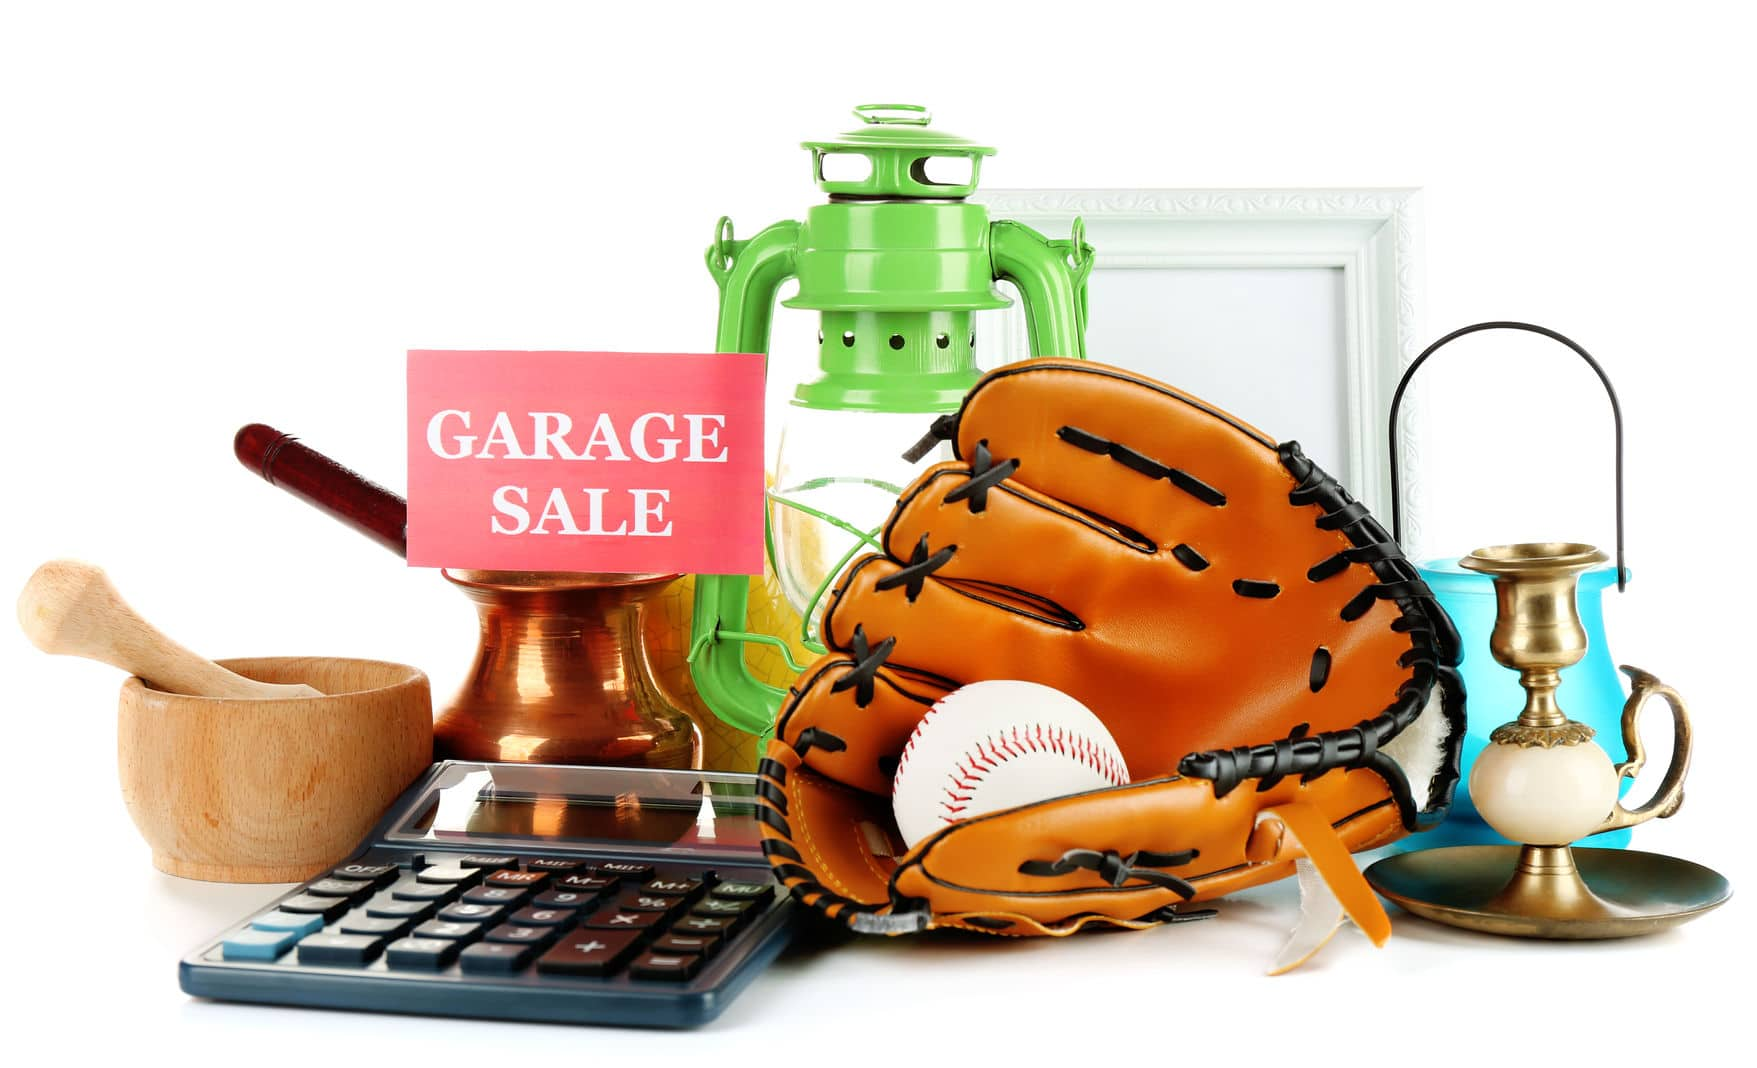 Yard sales are a great way to make some extra cash.